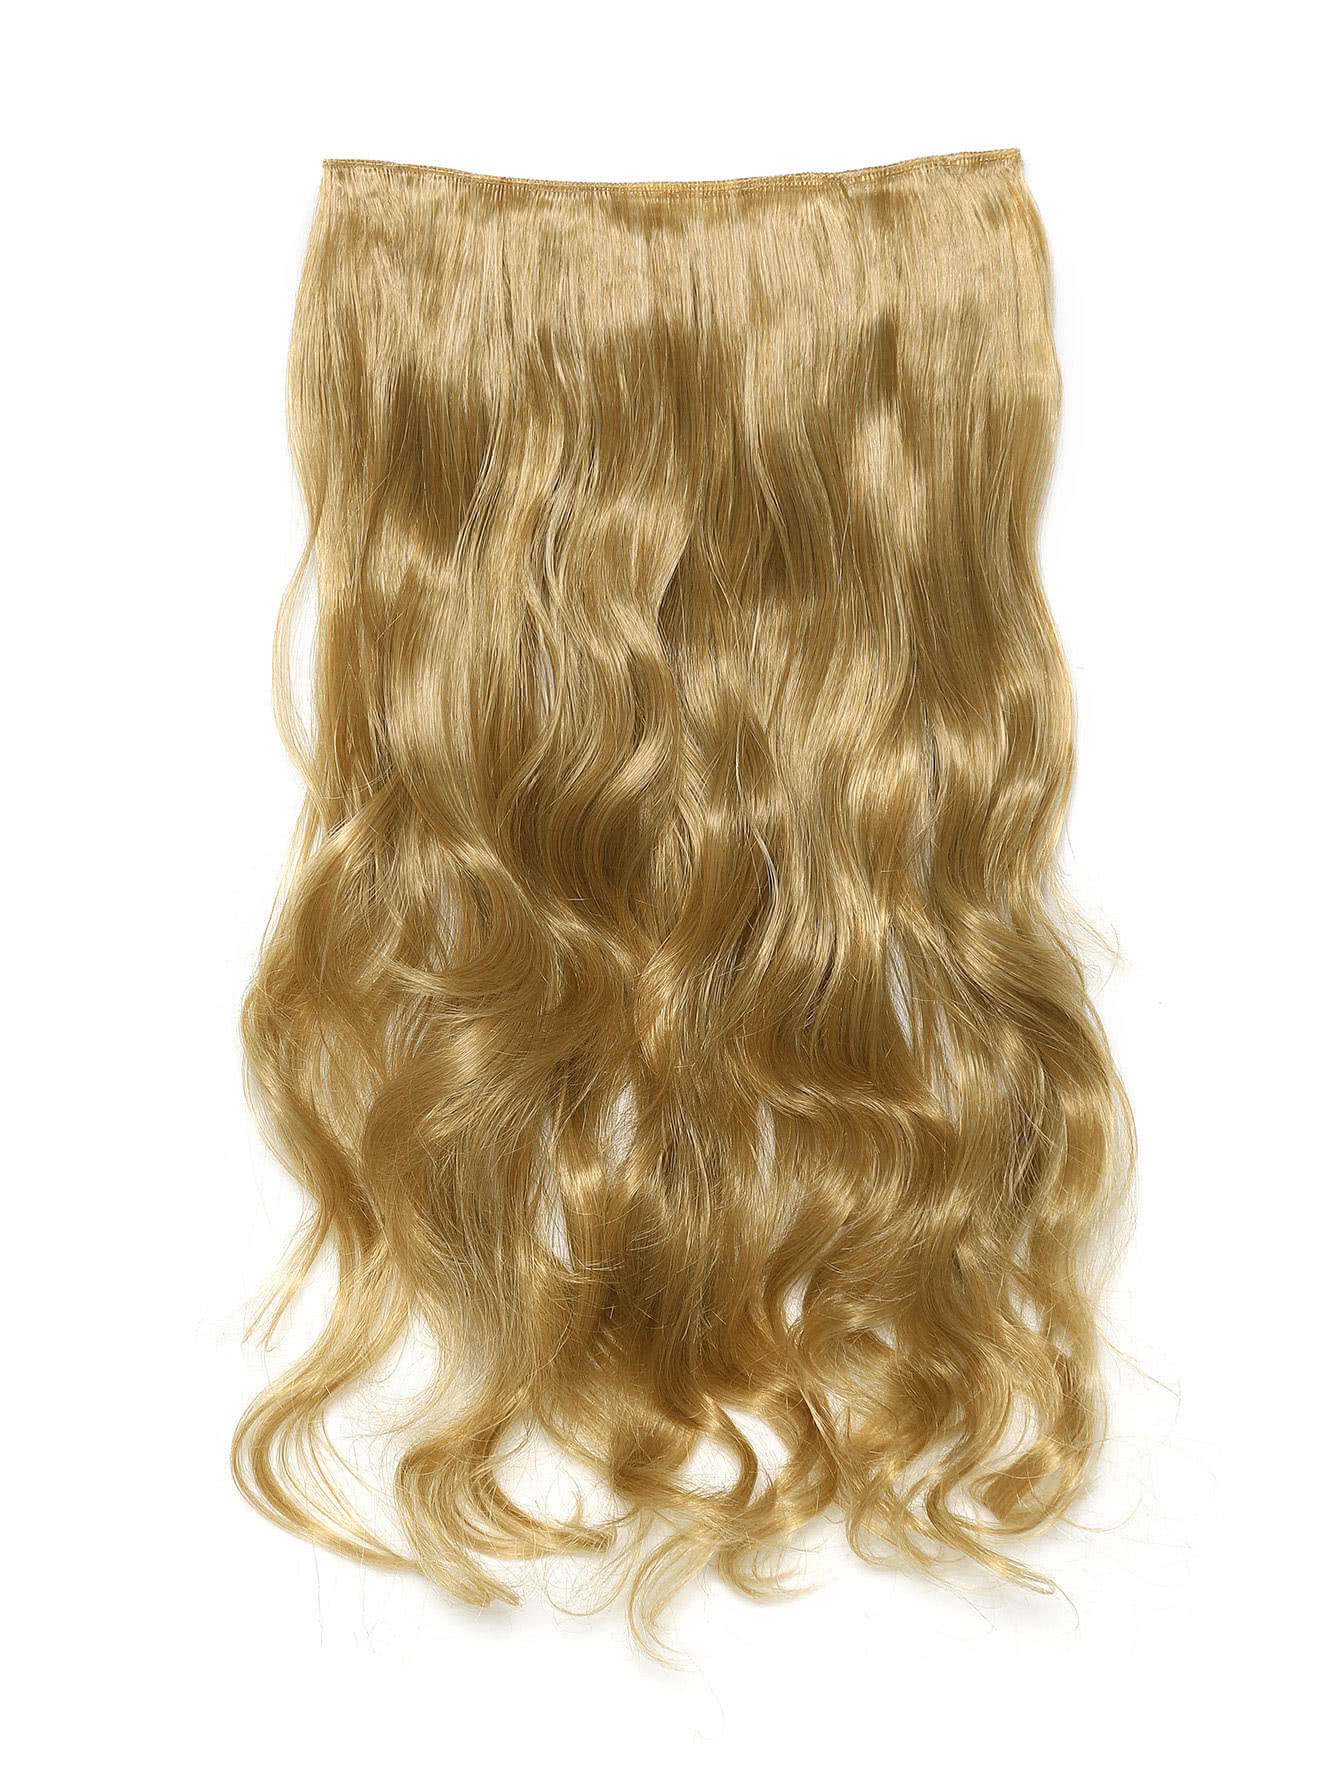 Honey Blonde & Caramel Clip In Soft Wave Hair Extension